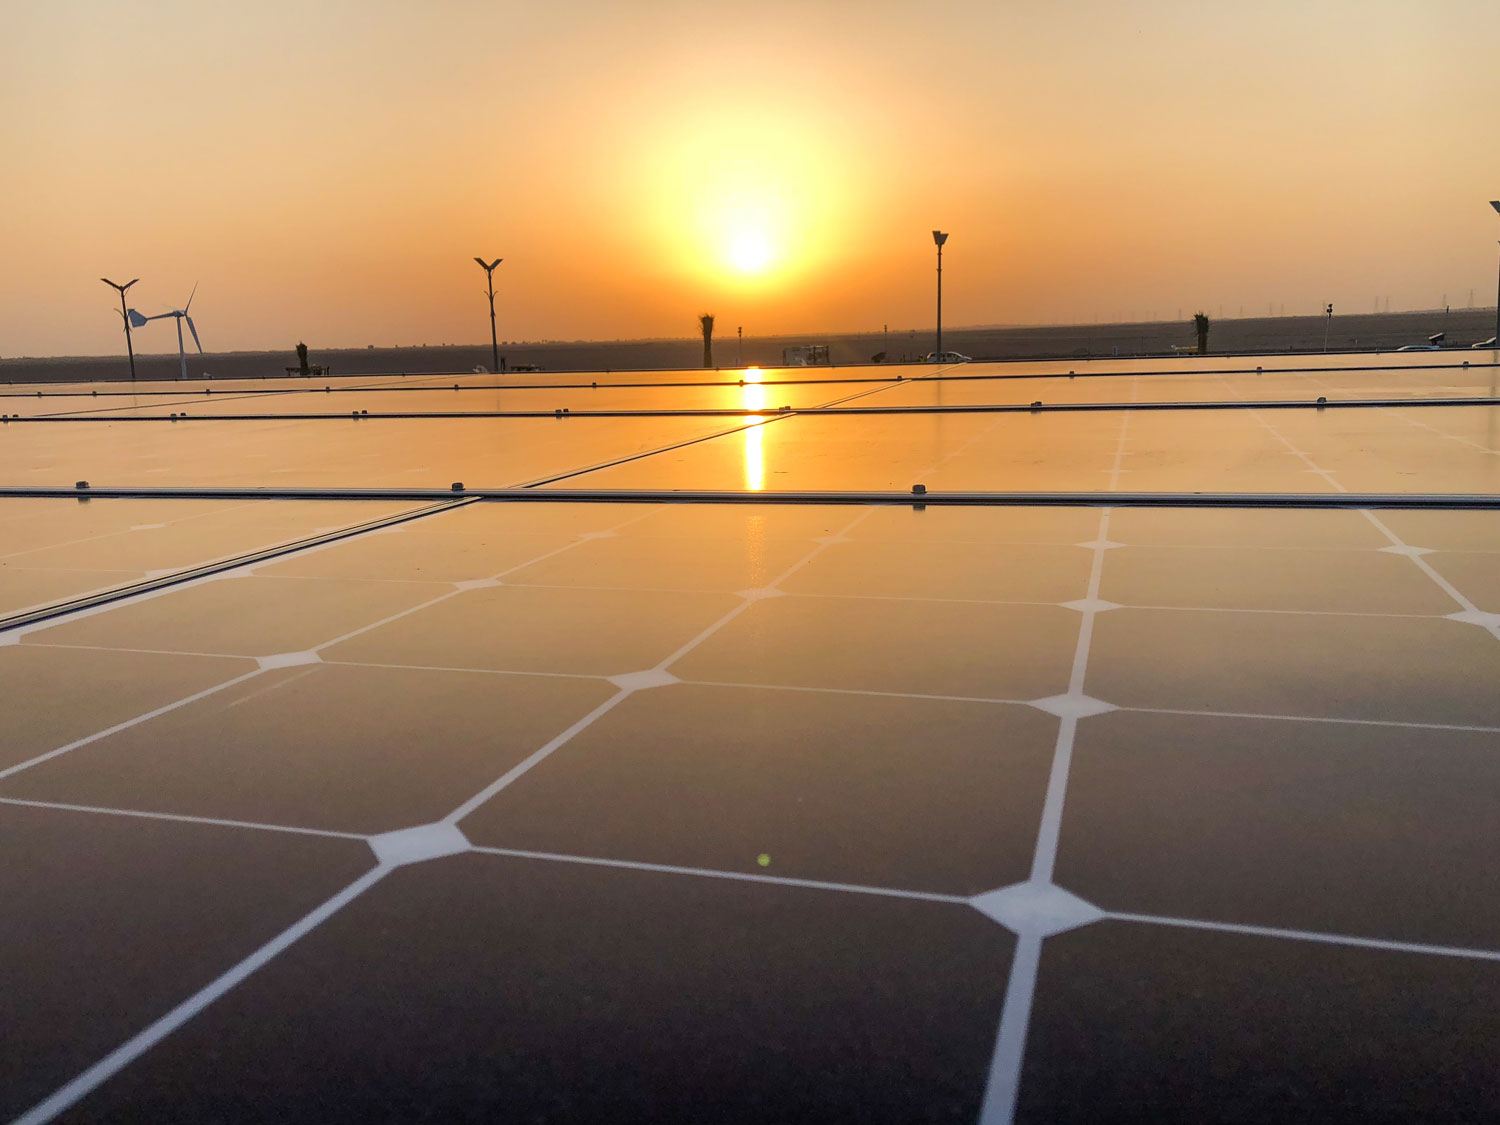 The Dubai sun sets on solar panels being used for FutureHAUS Dubai. (Photo by Laurie Booth)